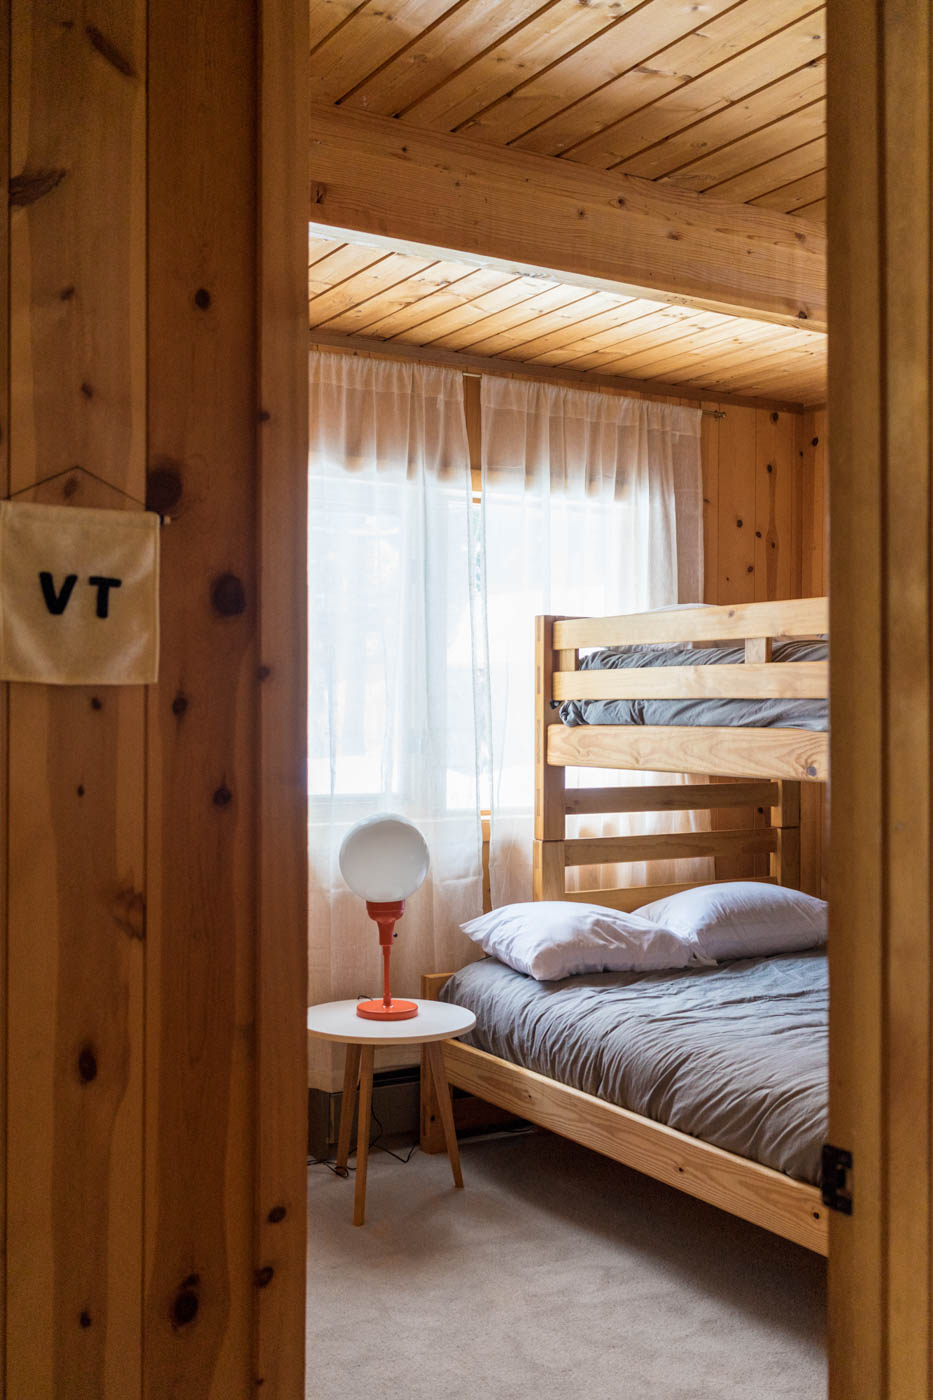 CabinGoals-WardsboroVT-natural-light-photography-studio-lifestyle-photoshoot-location-editorial-commercial-photography-16.jpg